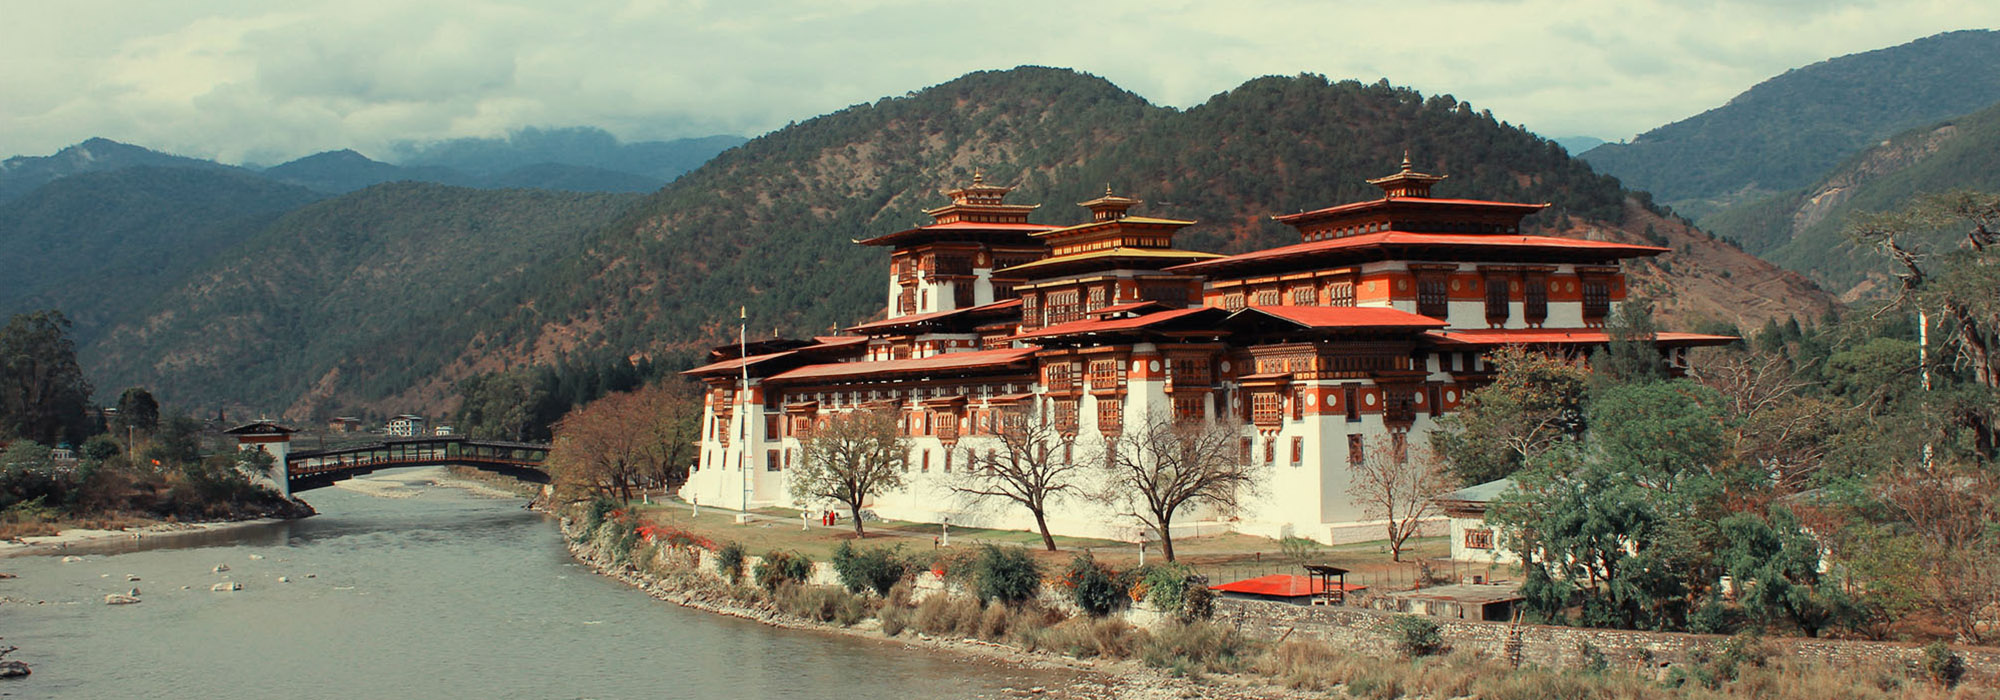 Top 5 Bhutan attractions for Tourists